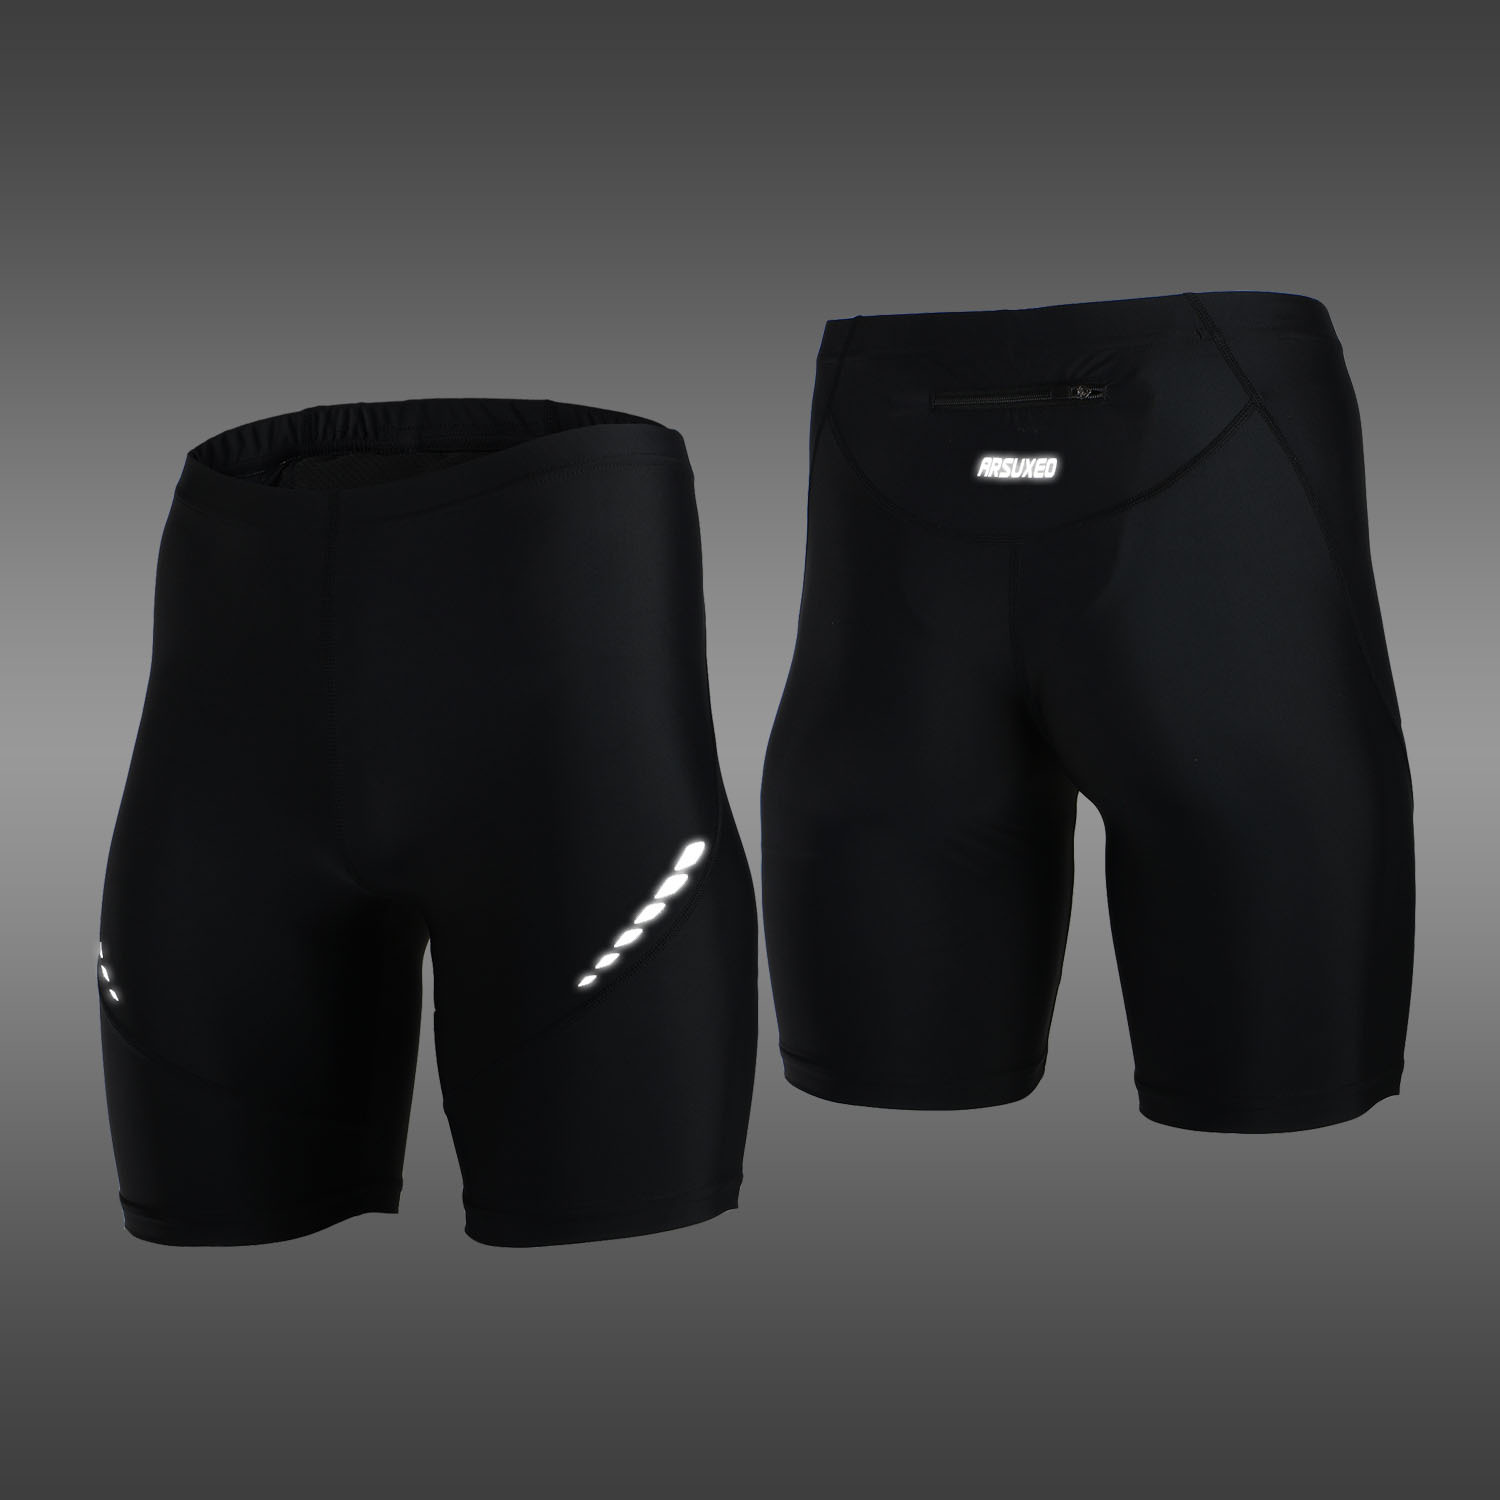 Pro mænds løbende strømpebukser Kort reflekterende hurtig tør elastik Sports leggings kompression gym fitness shorts sommer sweatpants